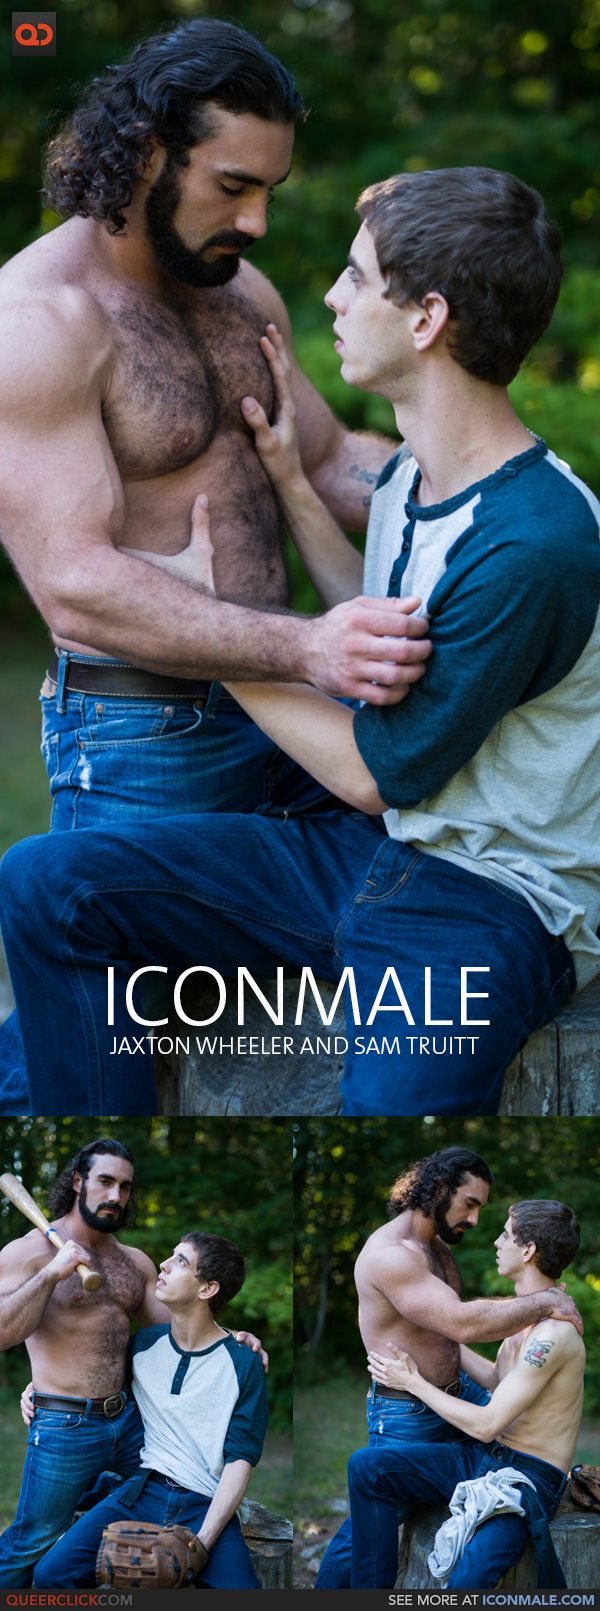 iconmale-wheeler-sam